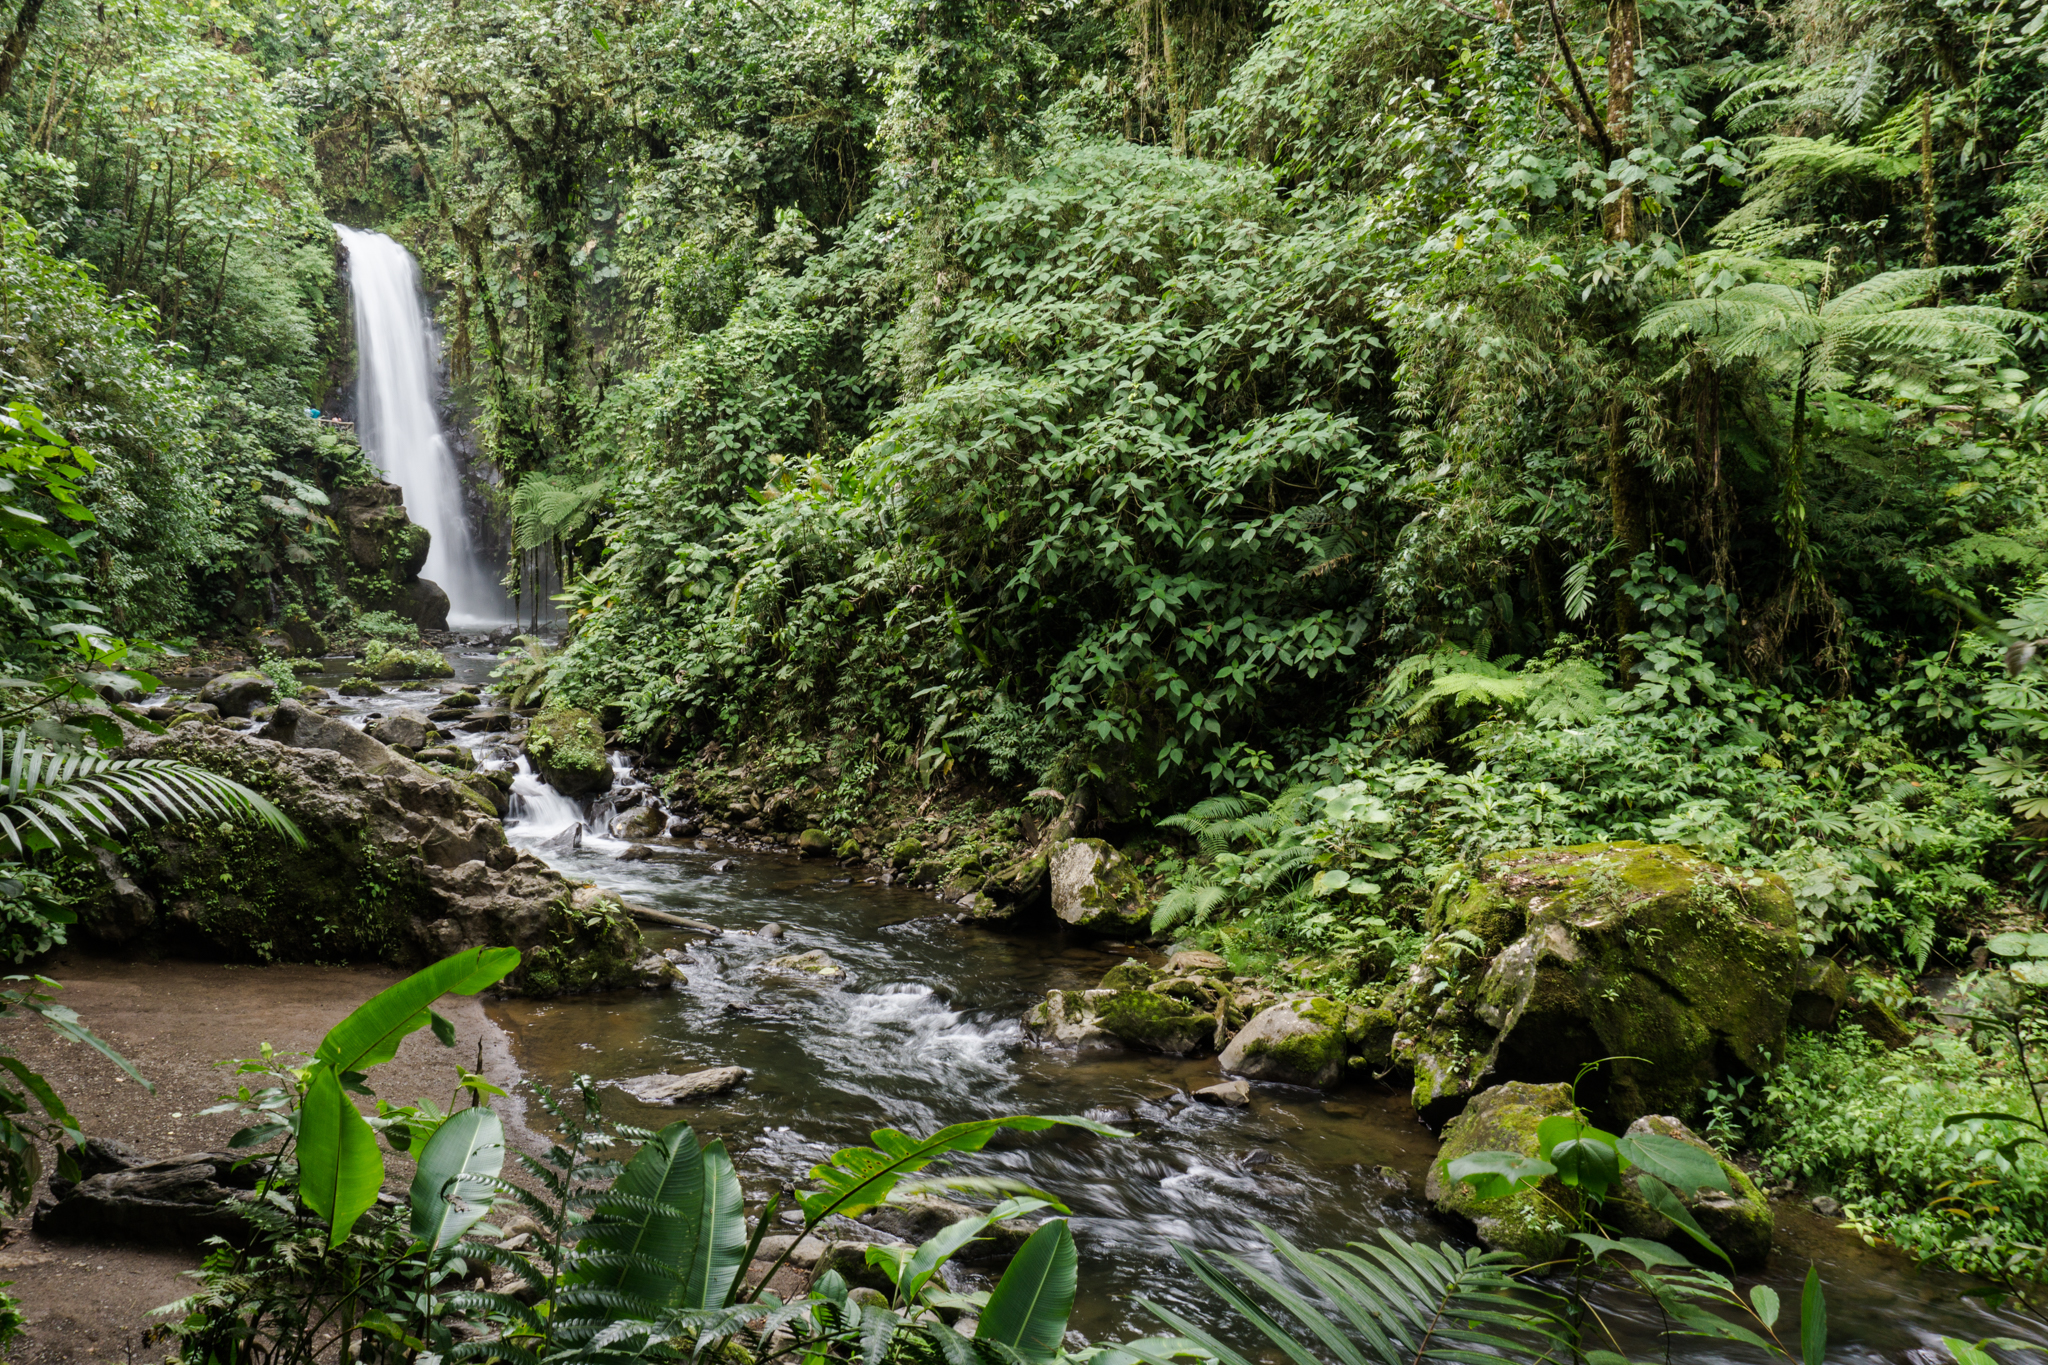 There are actually three waterfalls there in slow succession, so it's really just $20 per waterfall.